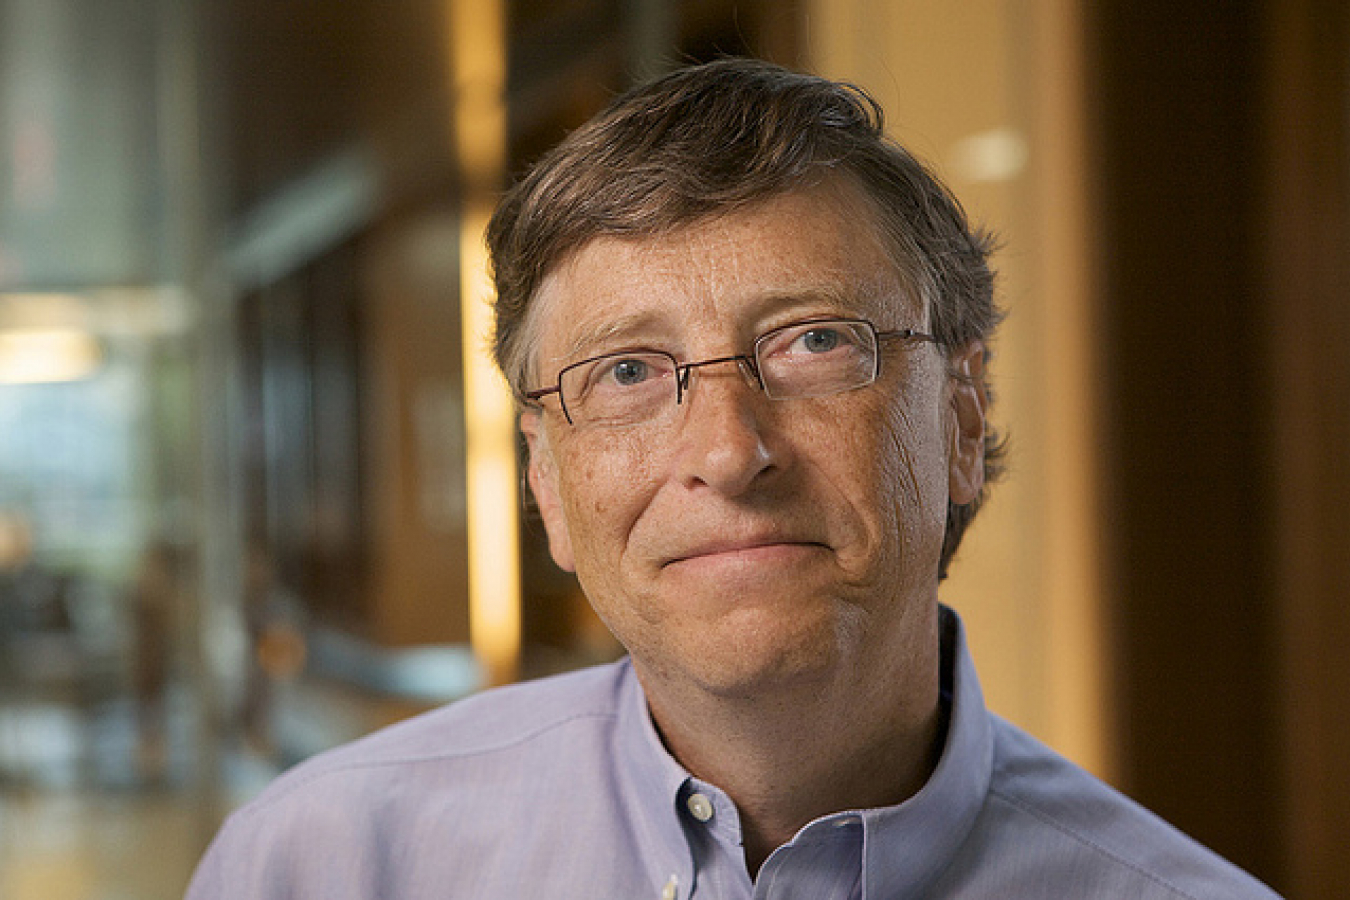 Bill Gates Microsoft Founder - OnInnovation.com Interview supports H1B and L1 Visa Scheme